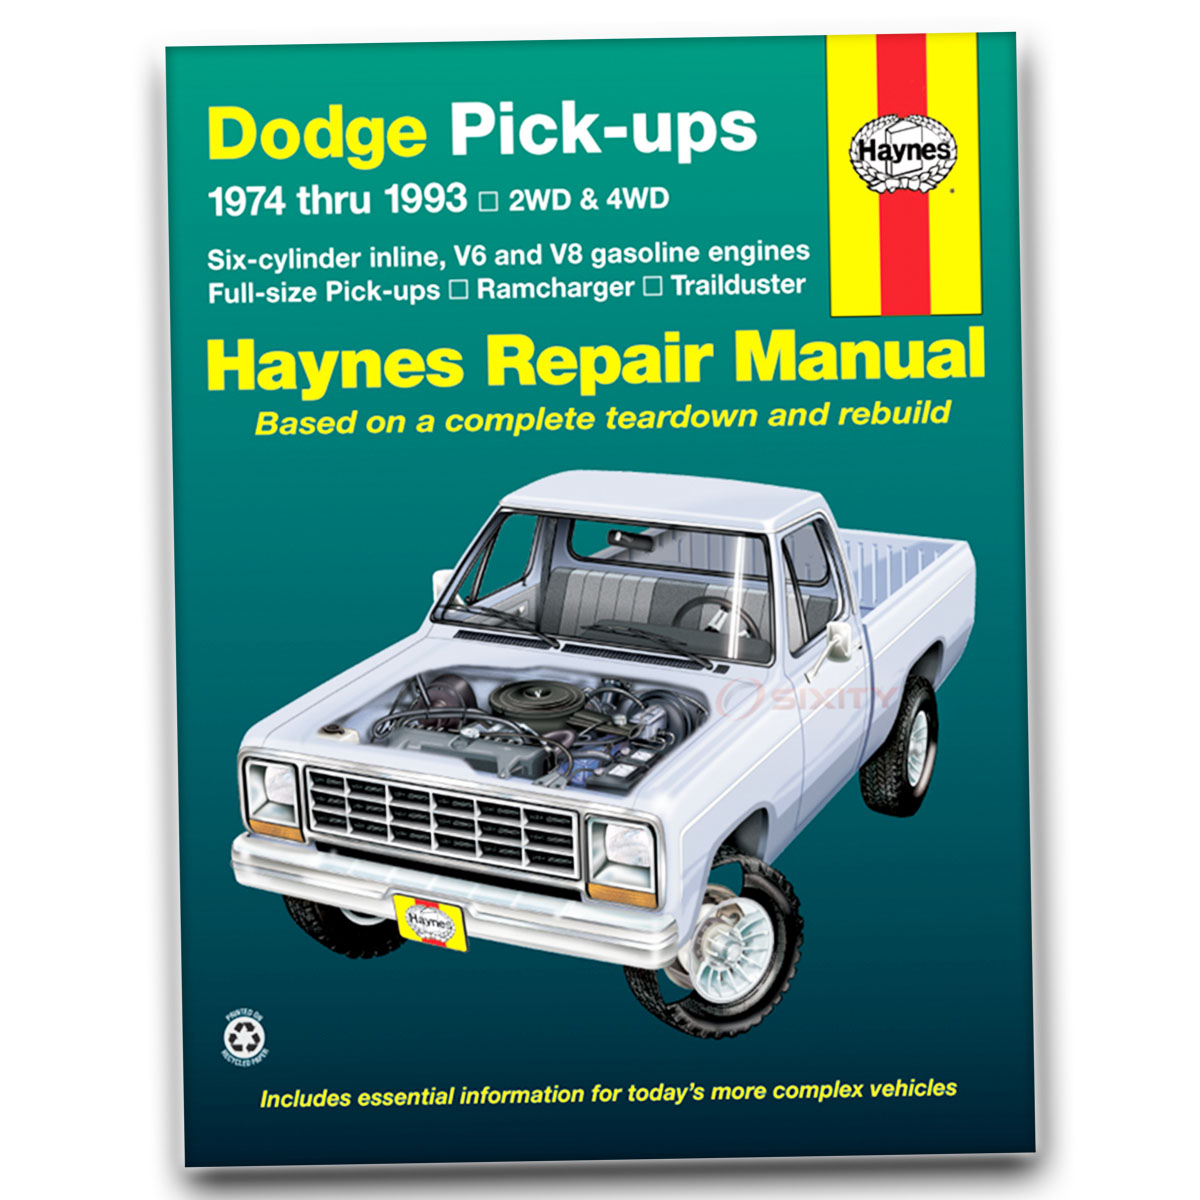 dodge d150 haynes repair manual s miser base shop service garage rh ebay com 2000 mustang haynes manual 2000 mustang haynes manual